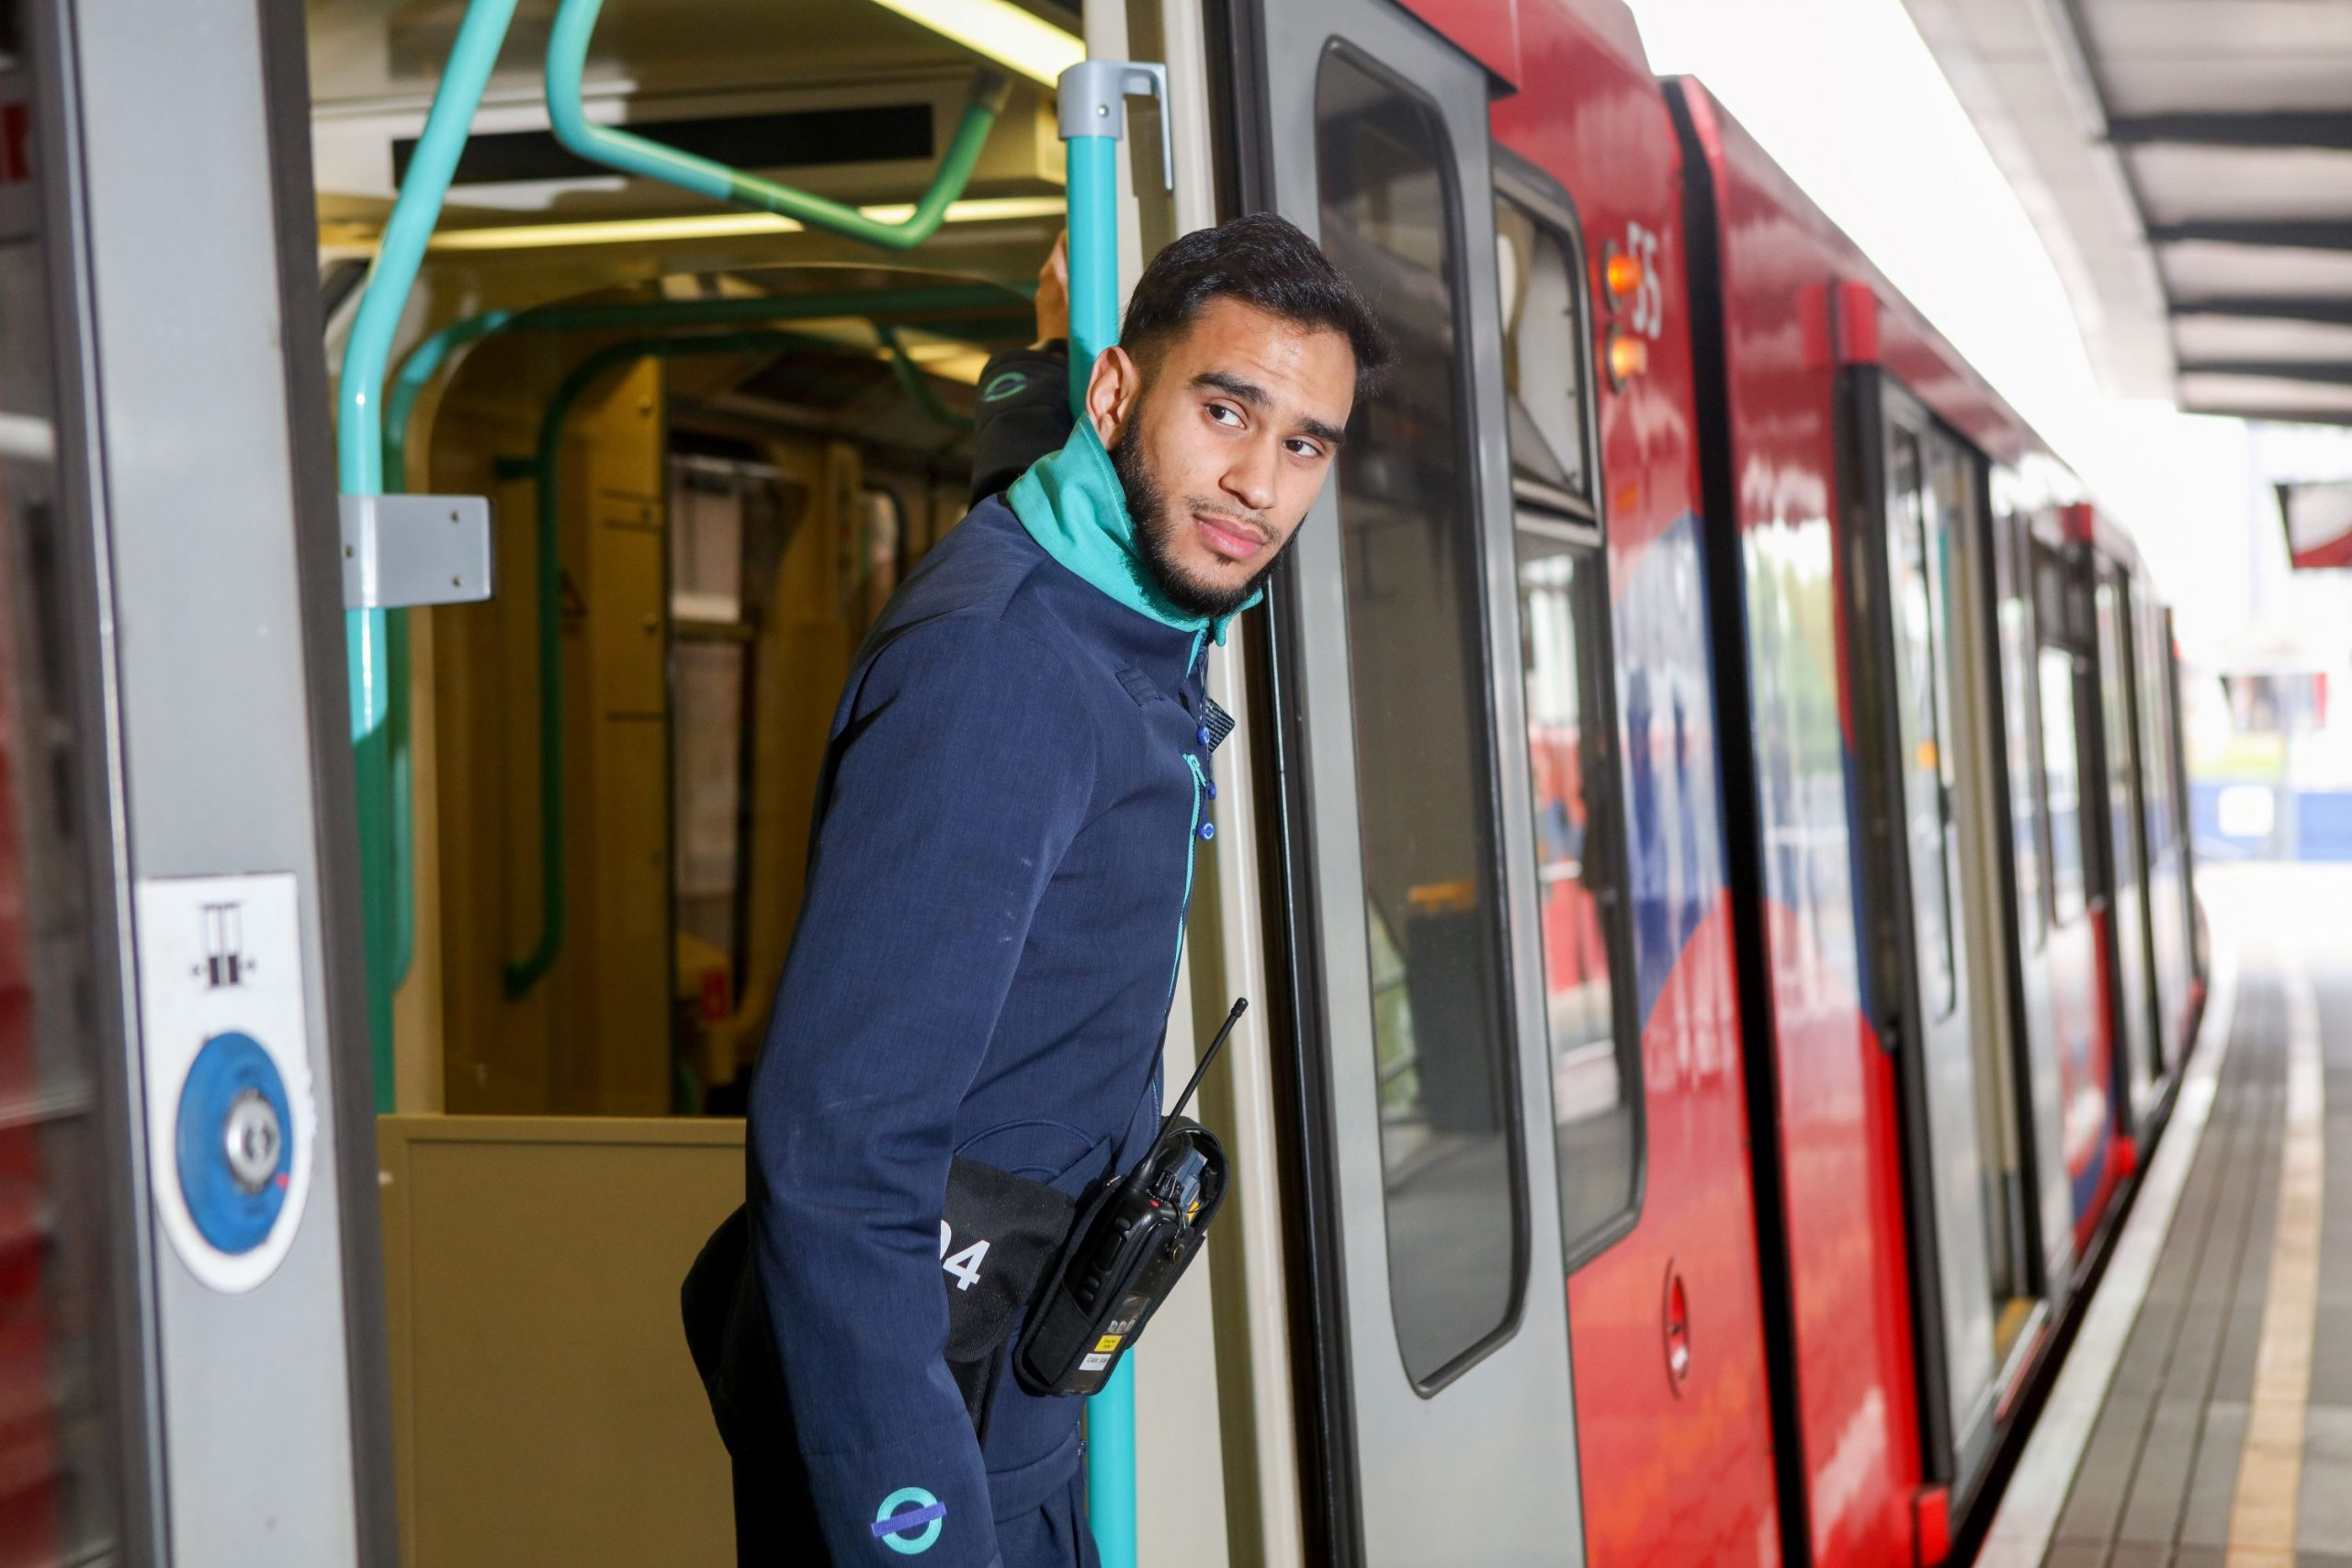 DLR staff member on train